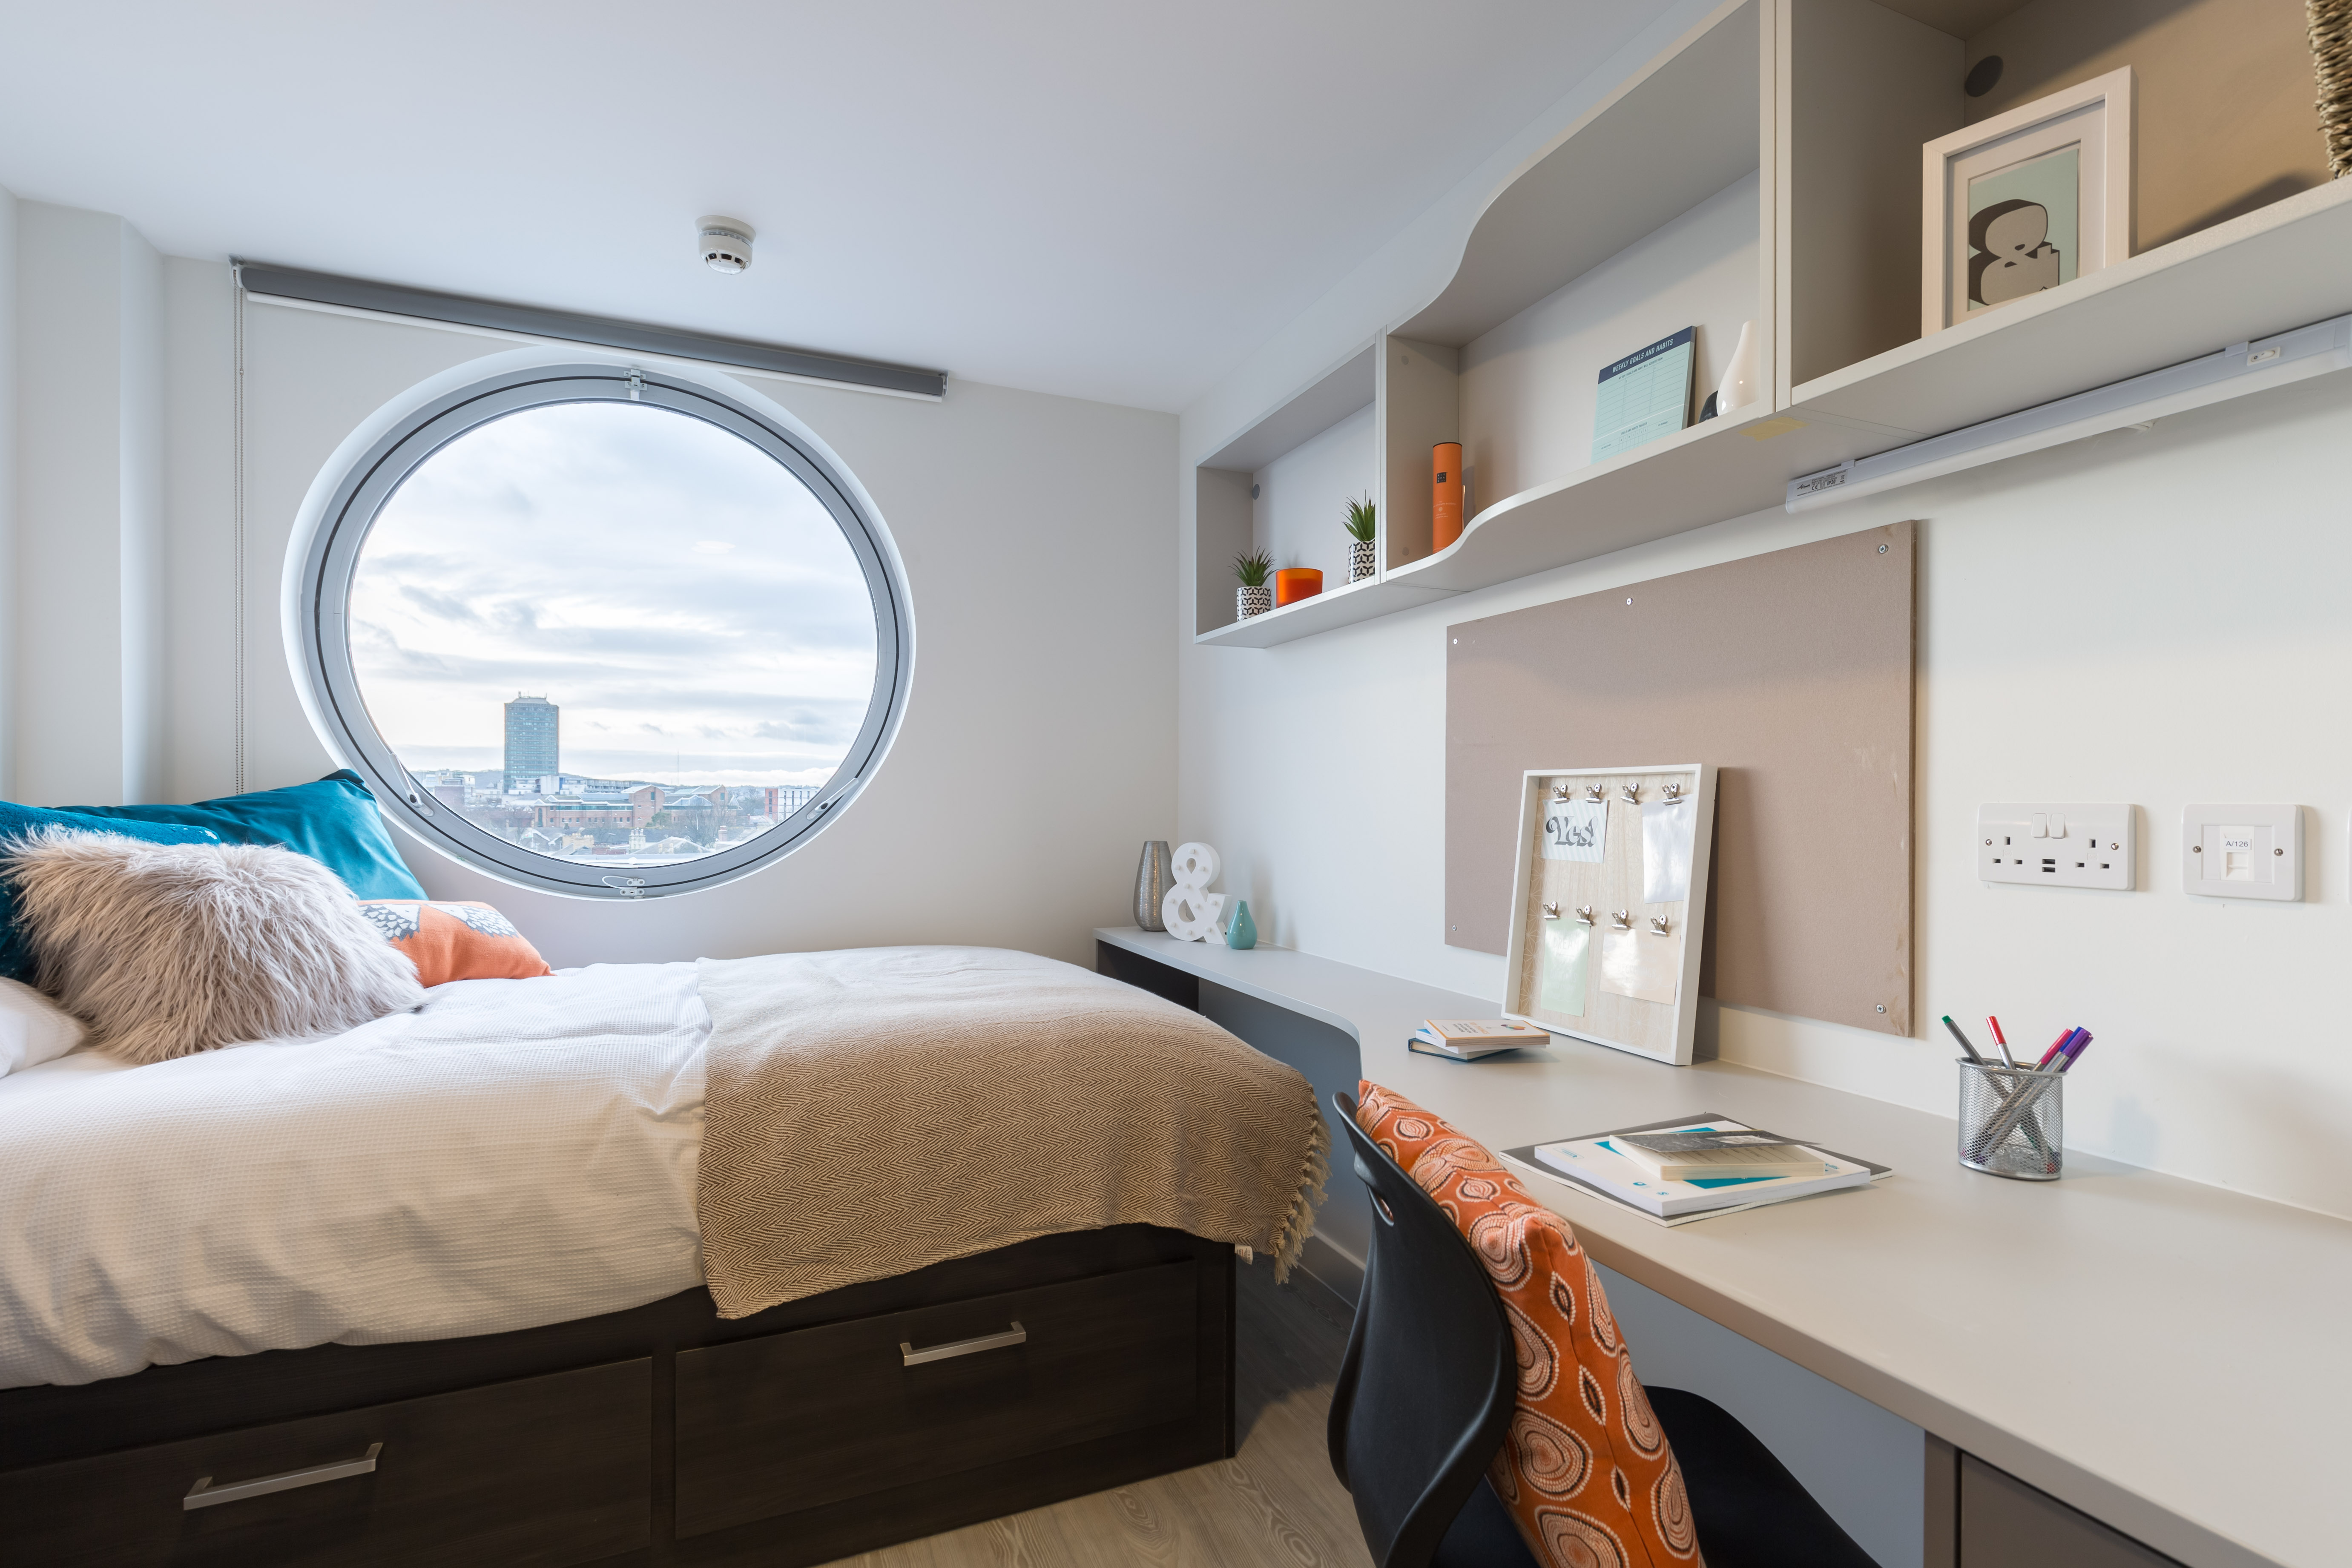 Photo of a bedroom at Livin Student Accommodation in Cardiff